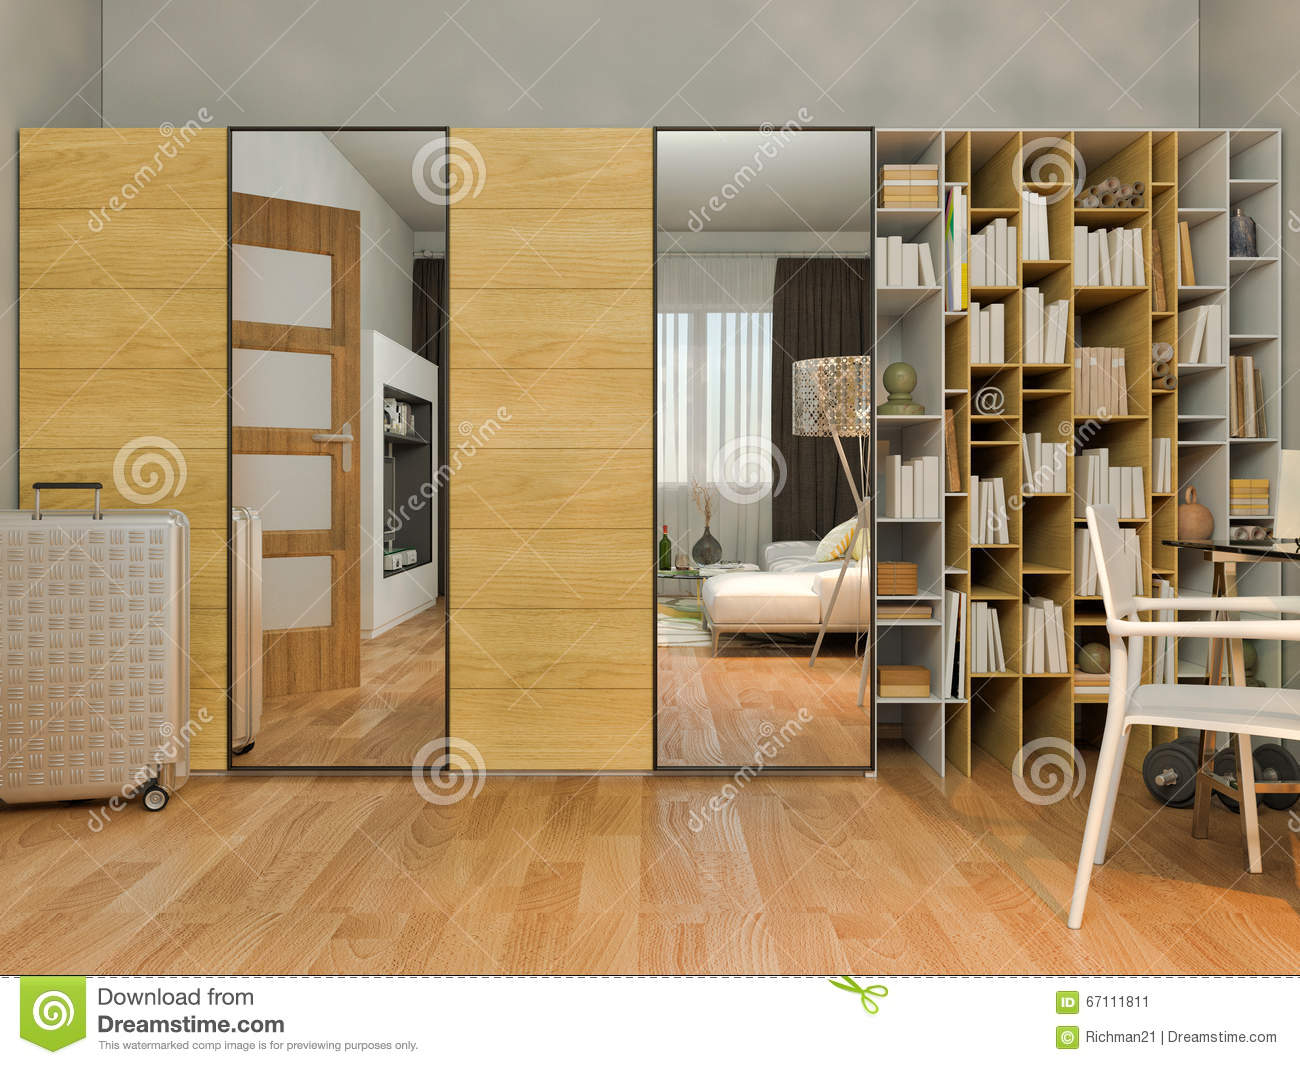 Living In A Studio Apartment 3d visualization of interior design living in a studio apartment